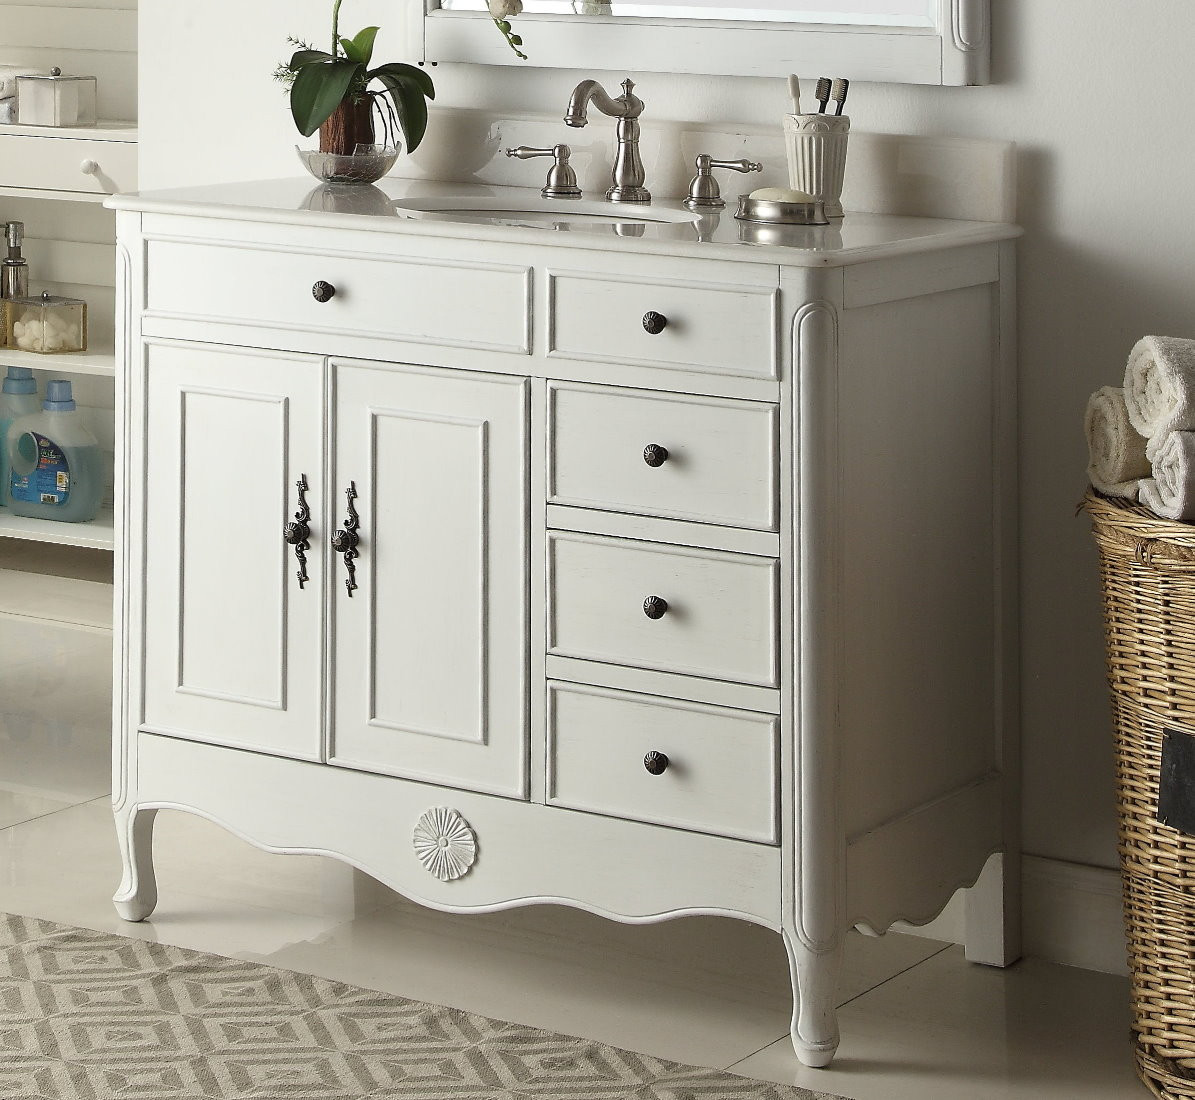 Dresser Bathroom Vanity  38 inch Bathroom Vanity Cottage Style Distressed Antique